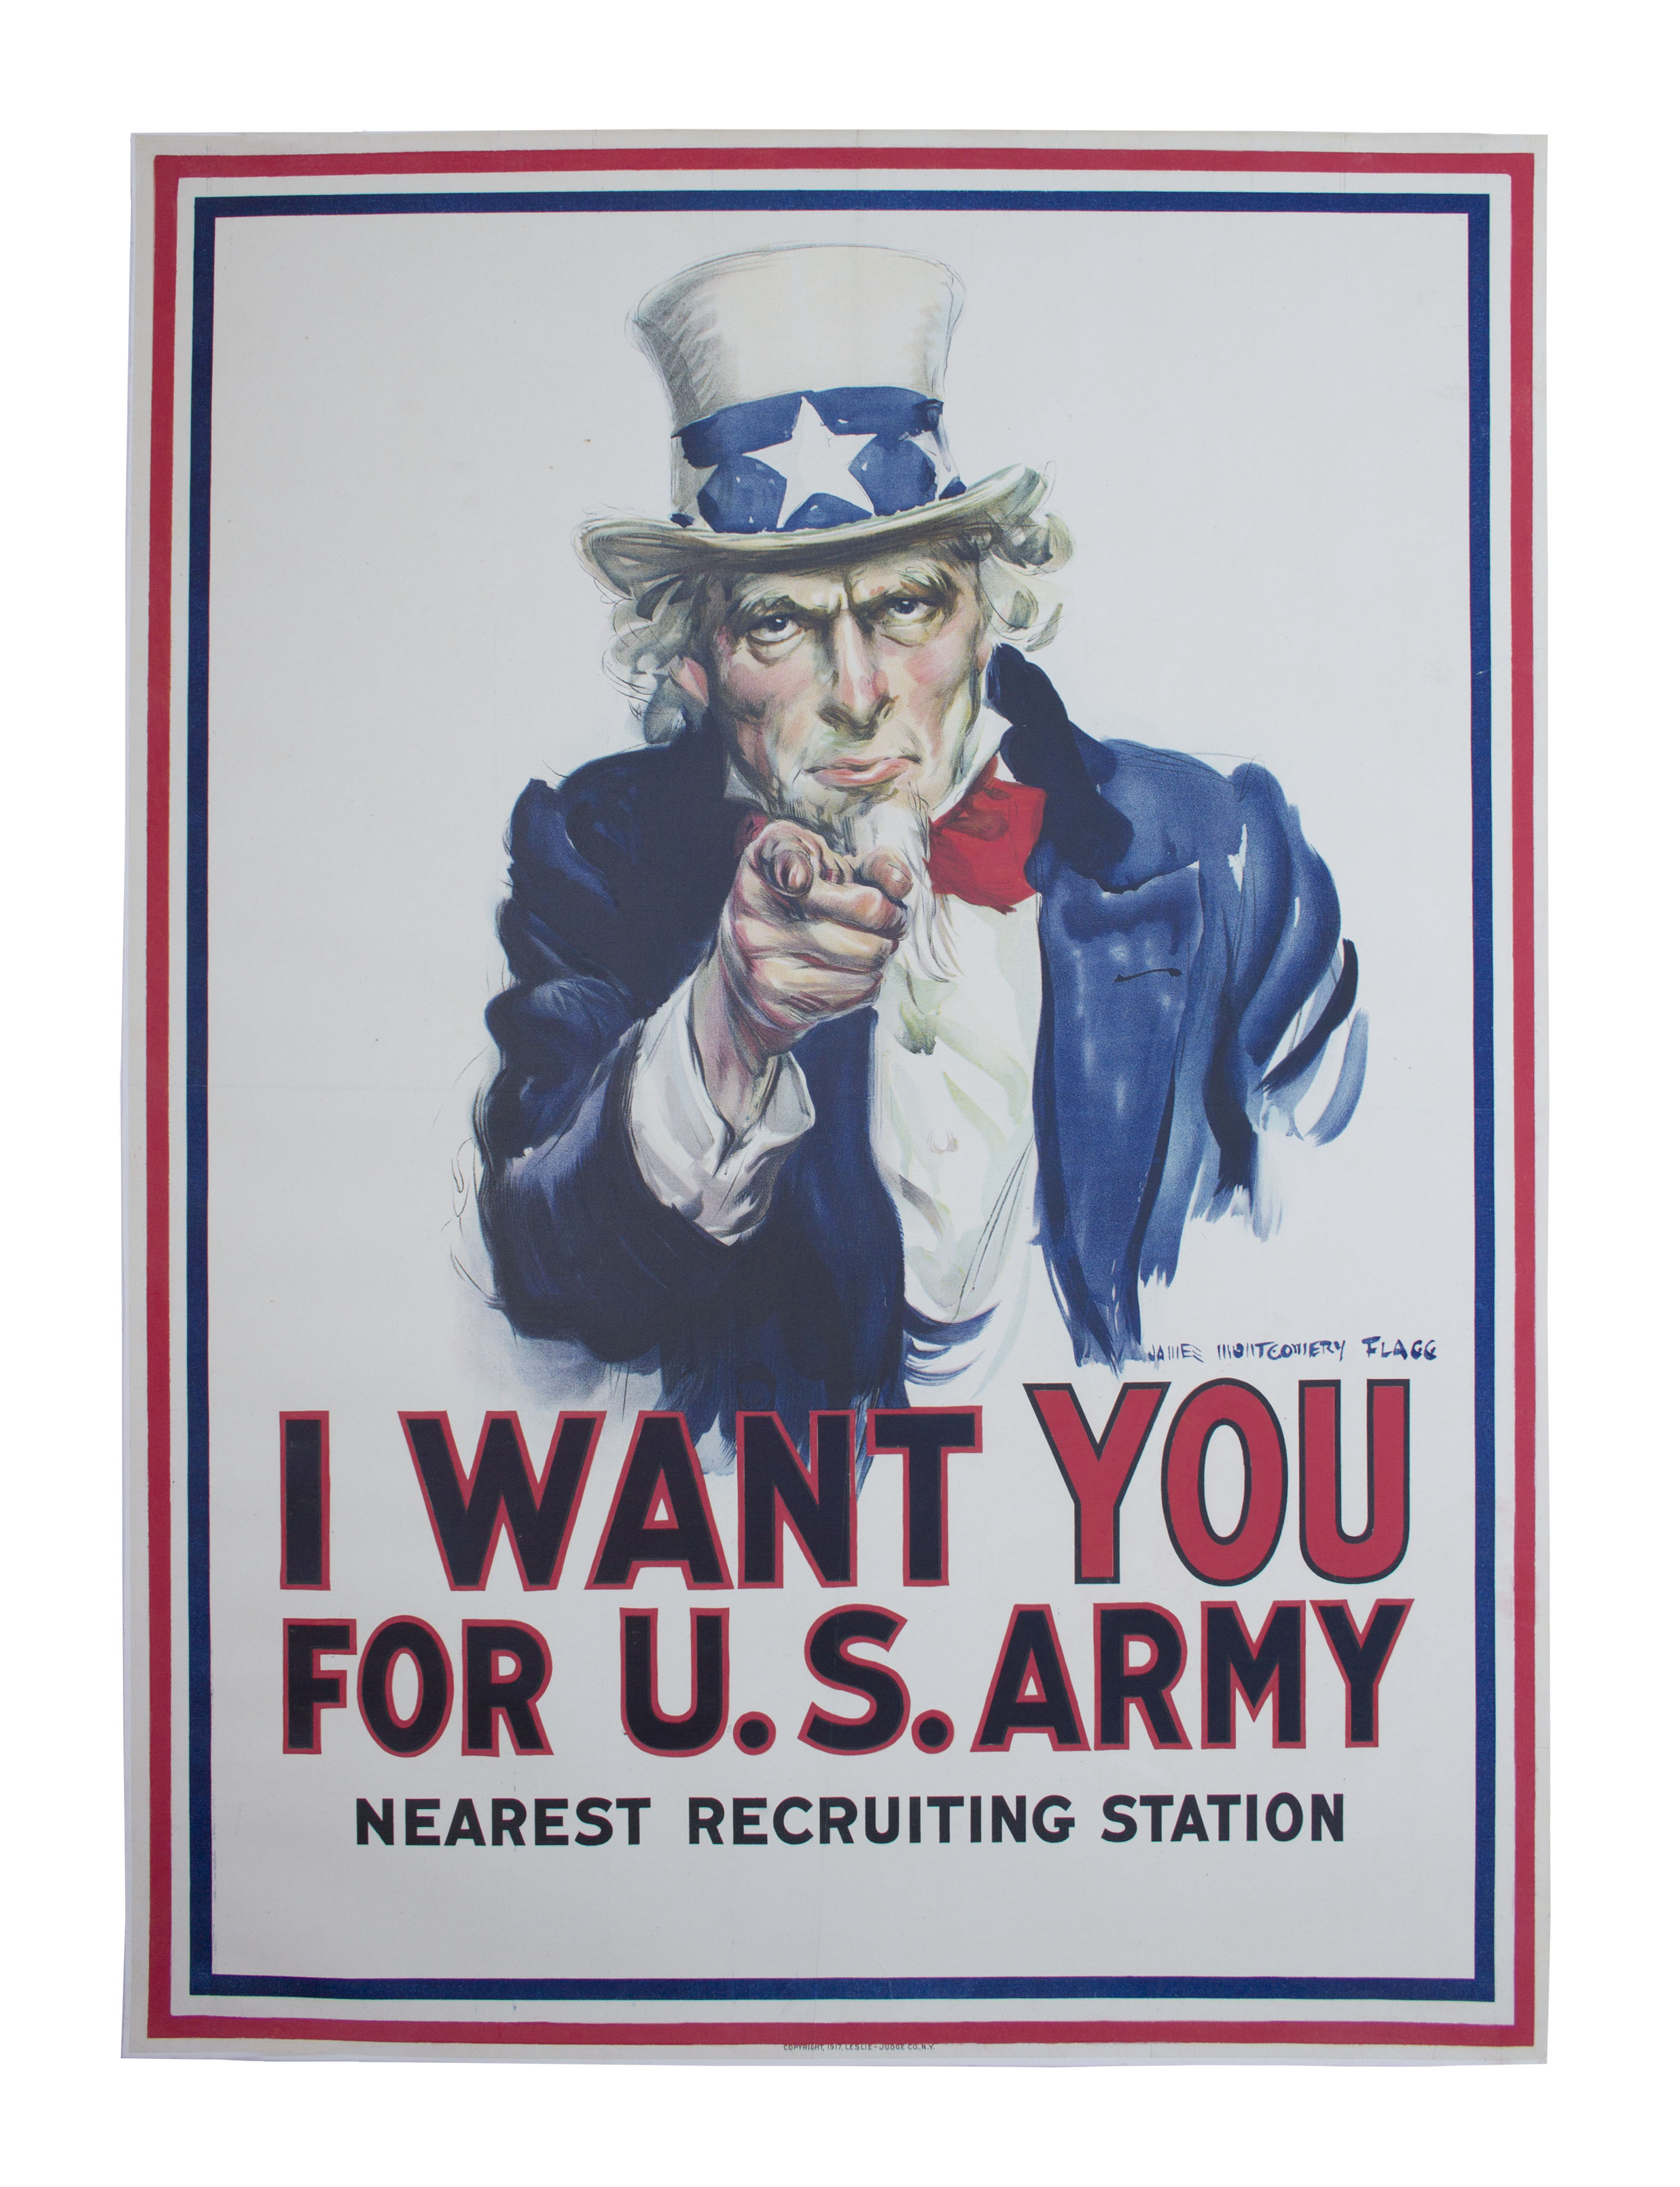 ''I Want You'' original Army recruitment poster from 1917 by James Montgomery Flagg